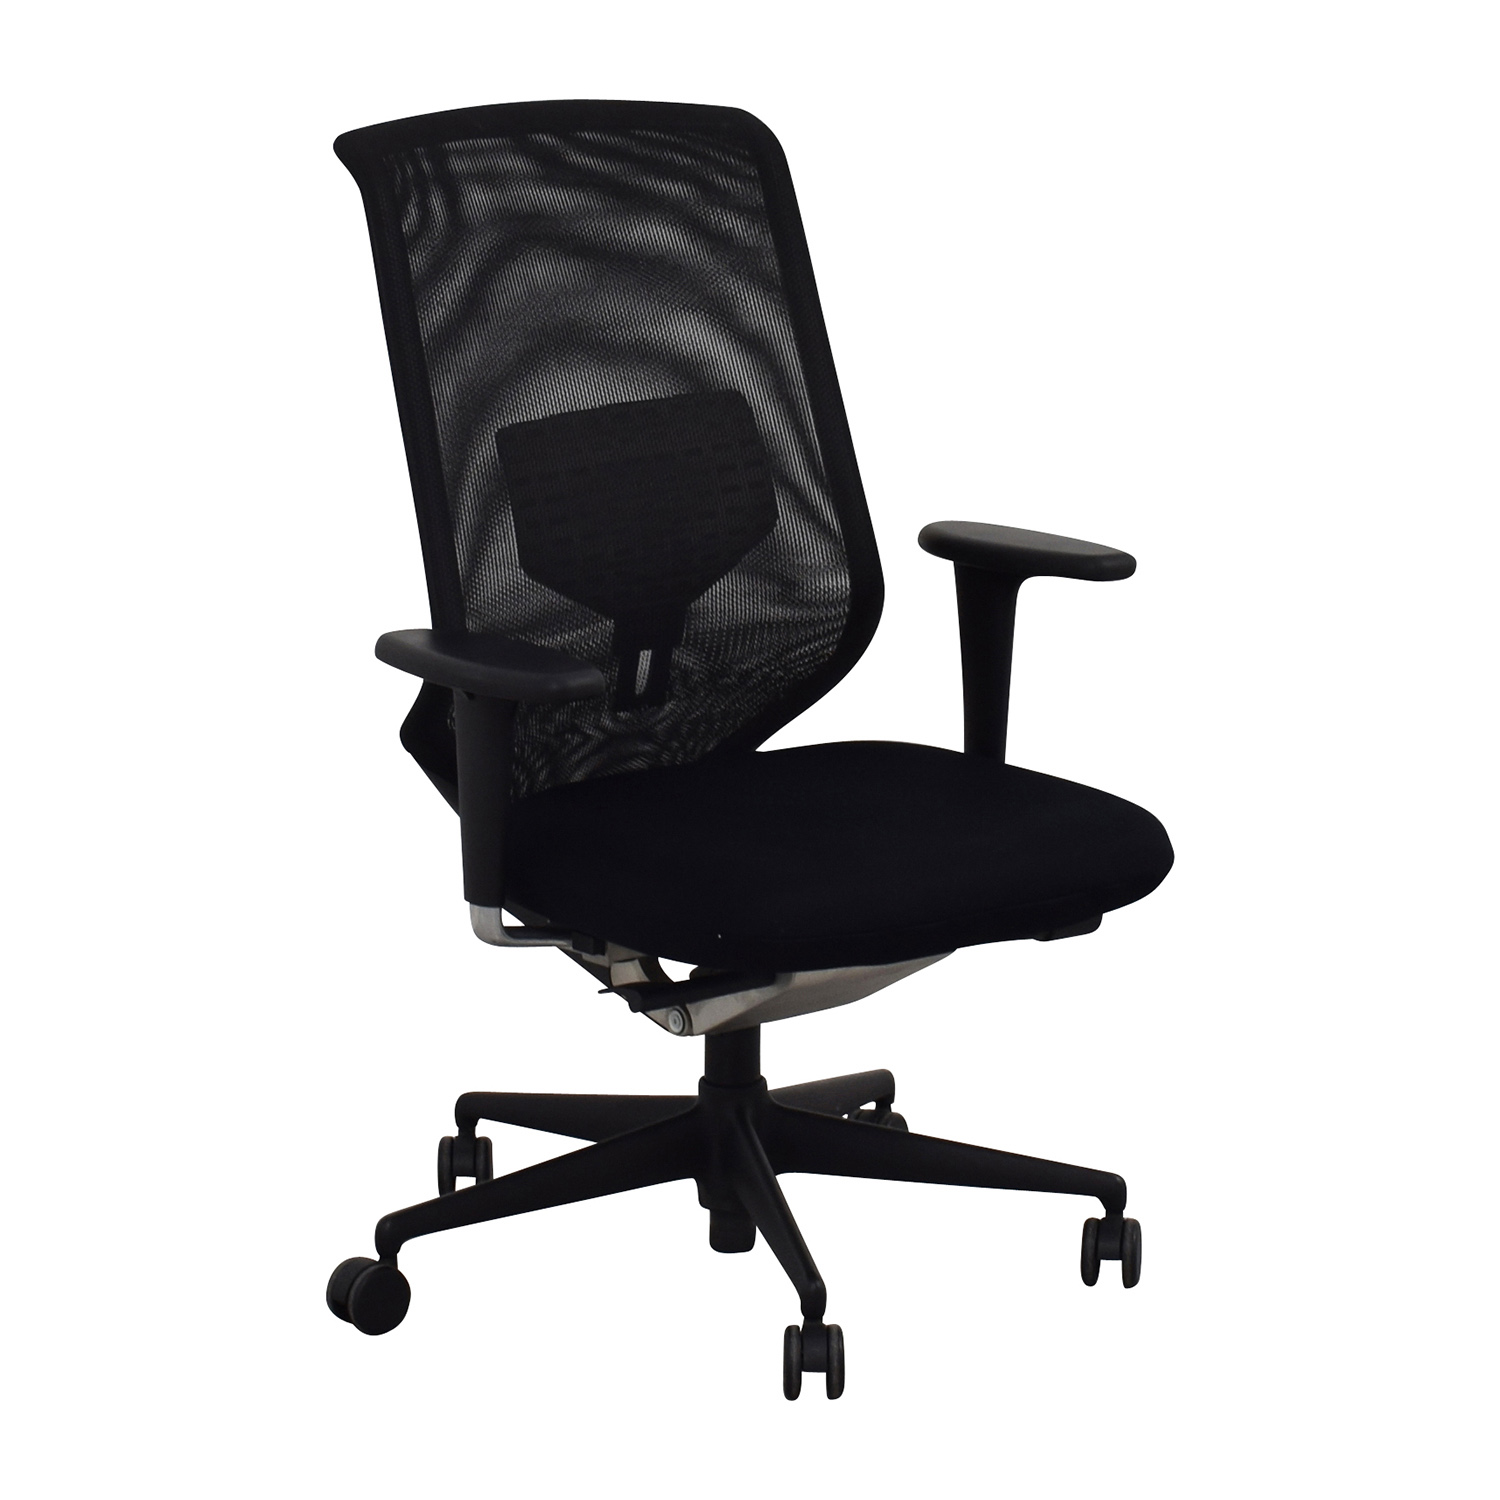 shop Vitra Meda Black Chair Vitra Home Office Chairs